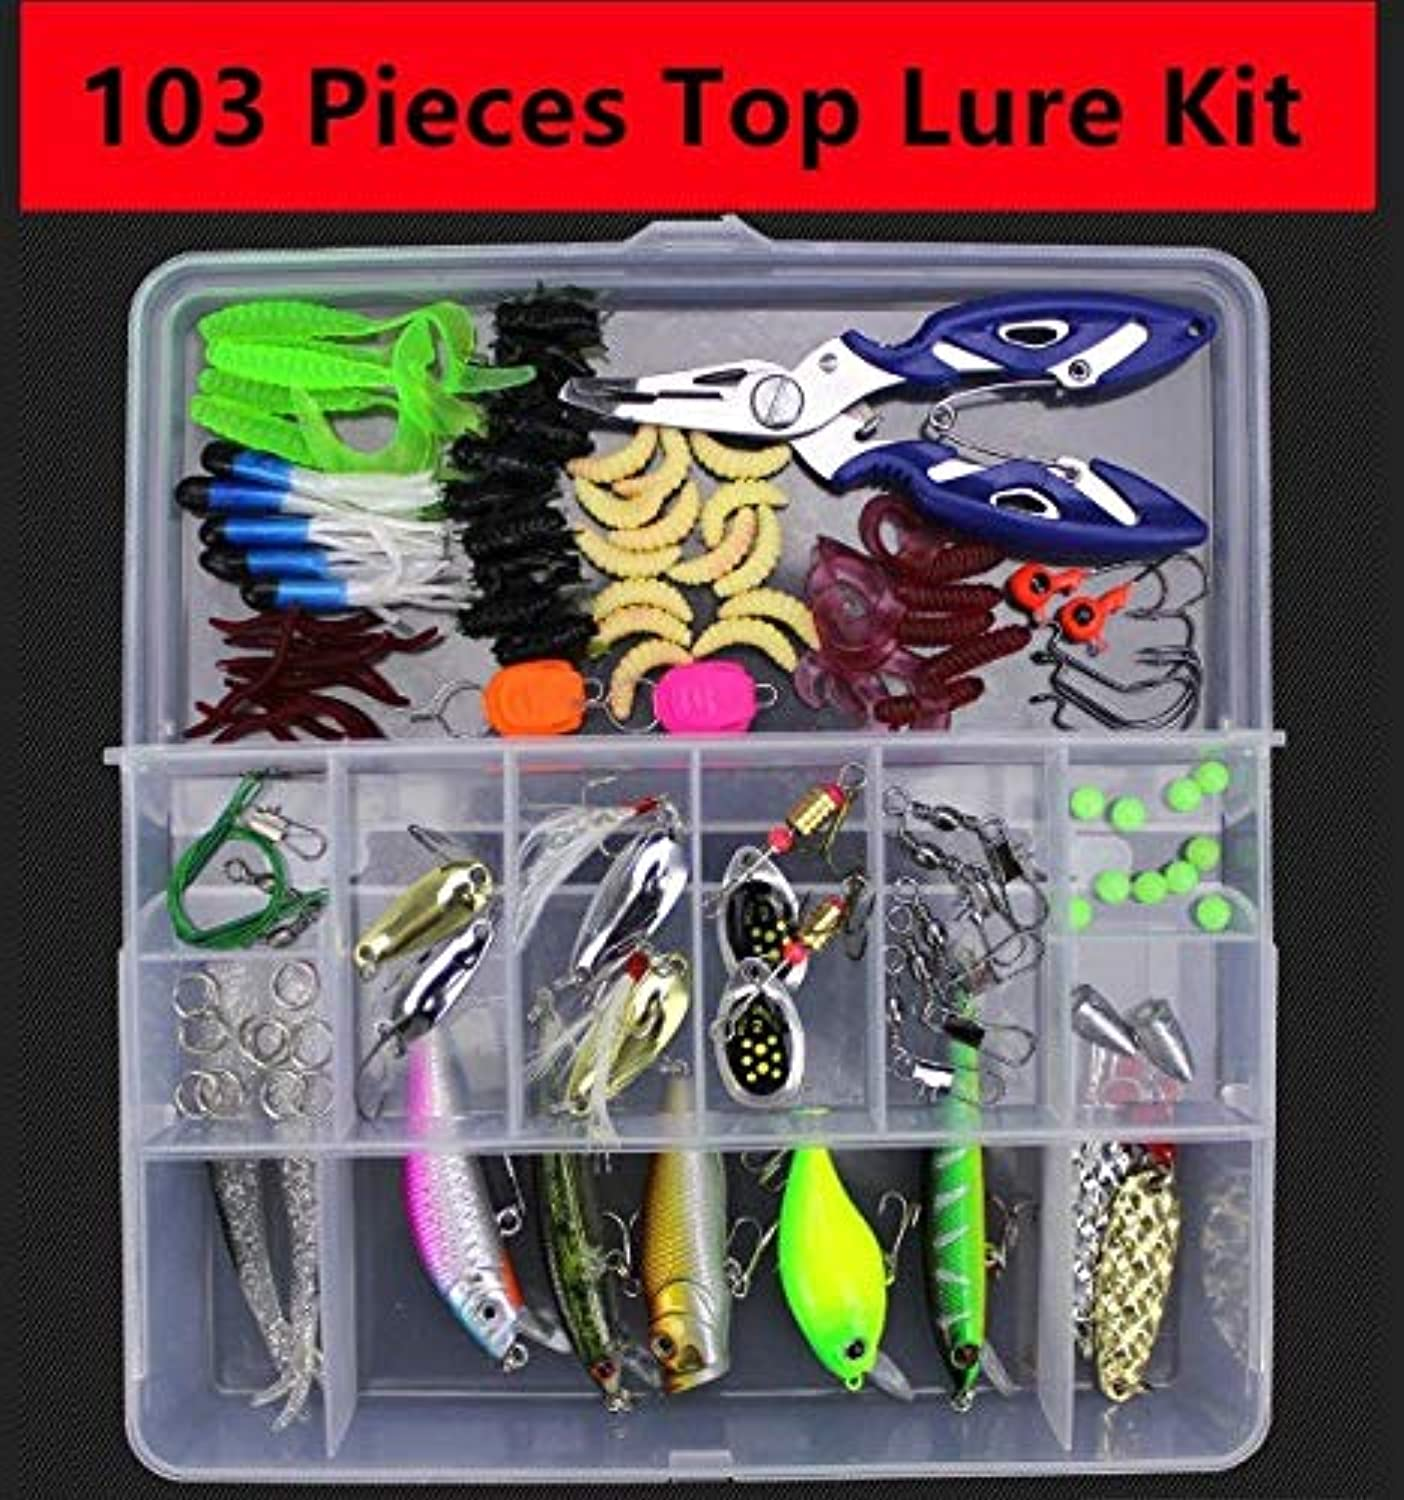 Generic Fishing Lure Kit 28106 Pieces Set Artificial Lures Beginning Primary Top Grade Suit MultiPurpose All Depth Tackle 103 Pieces Lure Kit